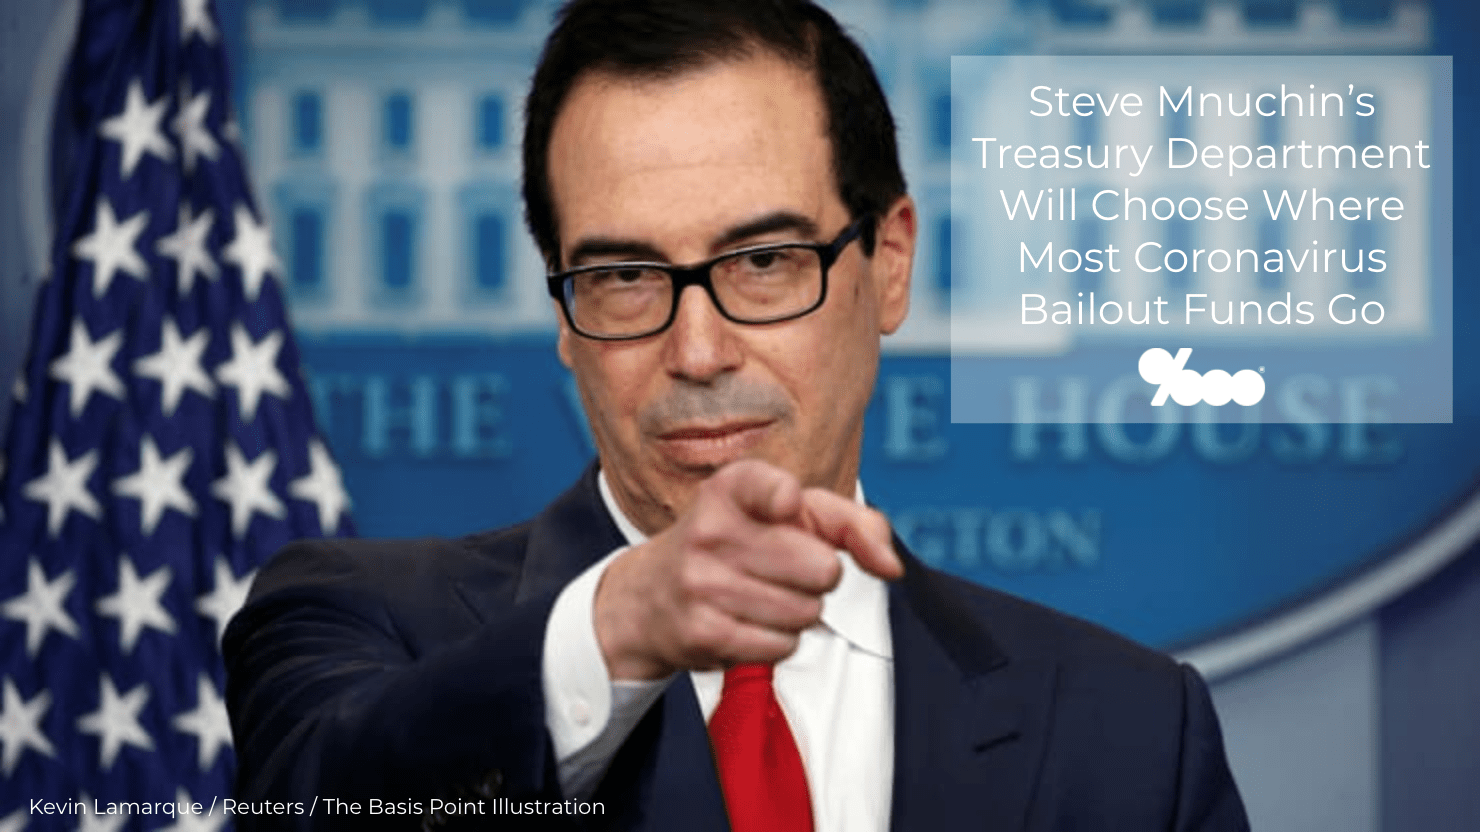 Steven Mnuchin's Treasury Department Will Choose Where Most of the $2.3 Trillion Coronavirus Bailout Funds Go - The Basis Point